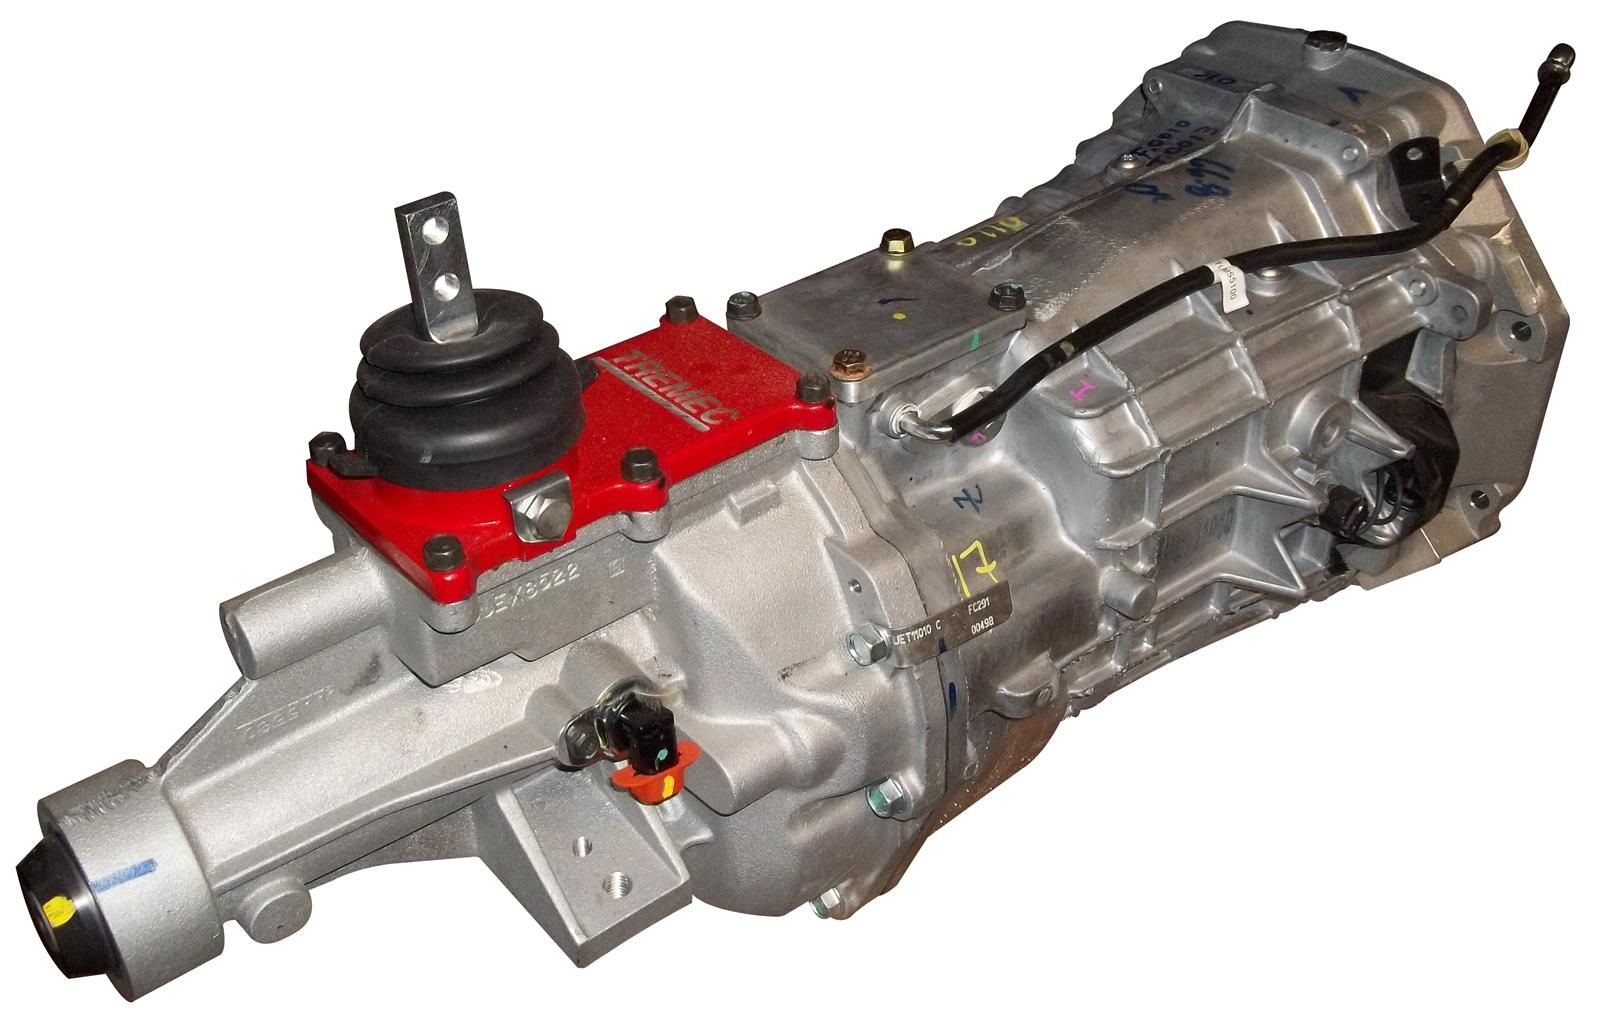 Tremec Tutorial A Quick Guide To Tremec Transmissions And Shifters Transmission Repair Shop Manual Transmission Transmission